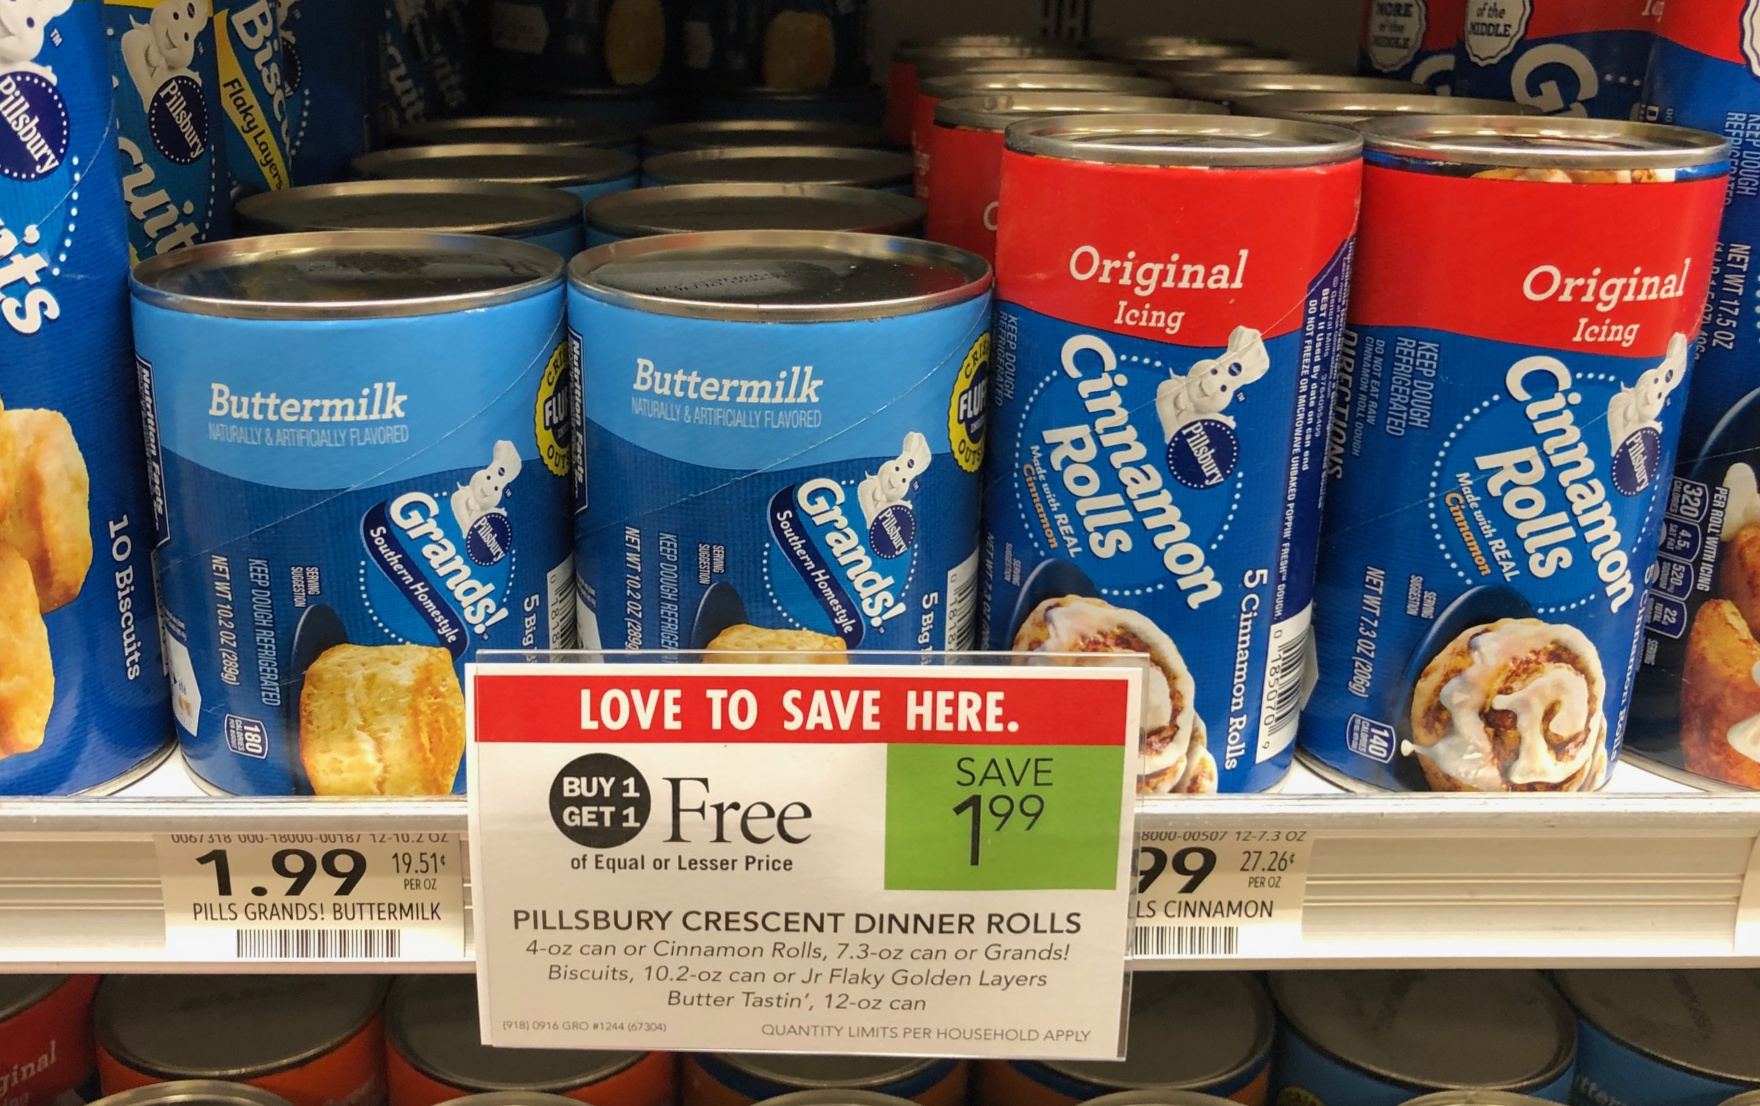 Pillsbury Crescents, Cinnamon Rolls Or Biscuits As Low As 67¢ Per Can At Publix on I Heart Publix